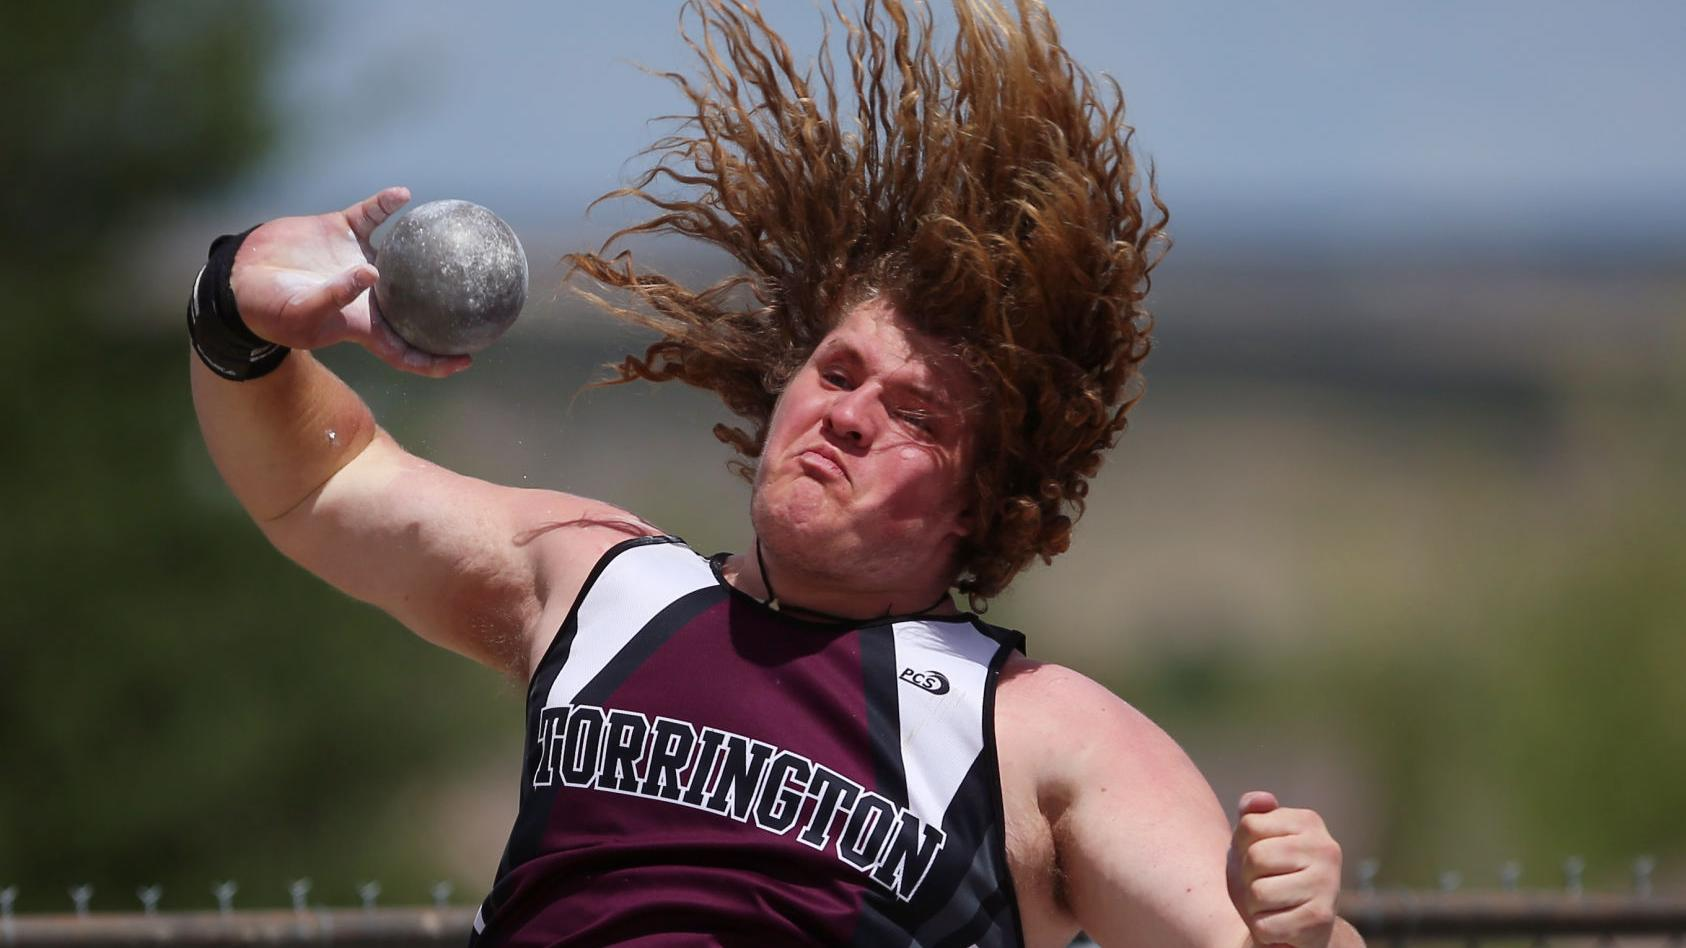 Torrington senior Logan Harris channels crowd's energy to break shot put record